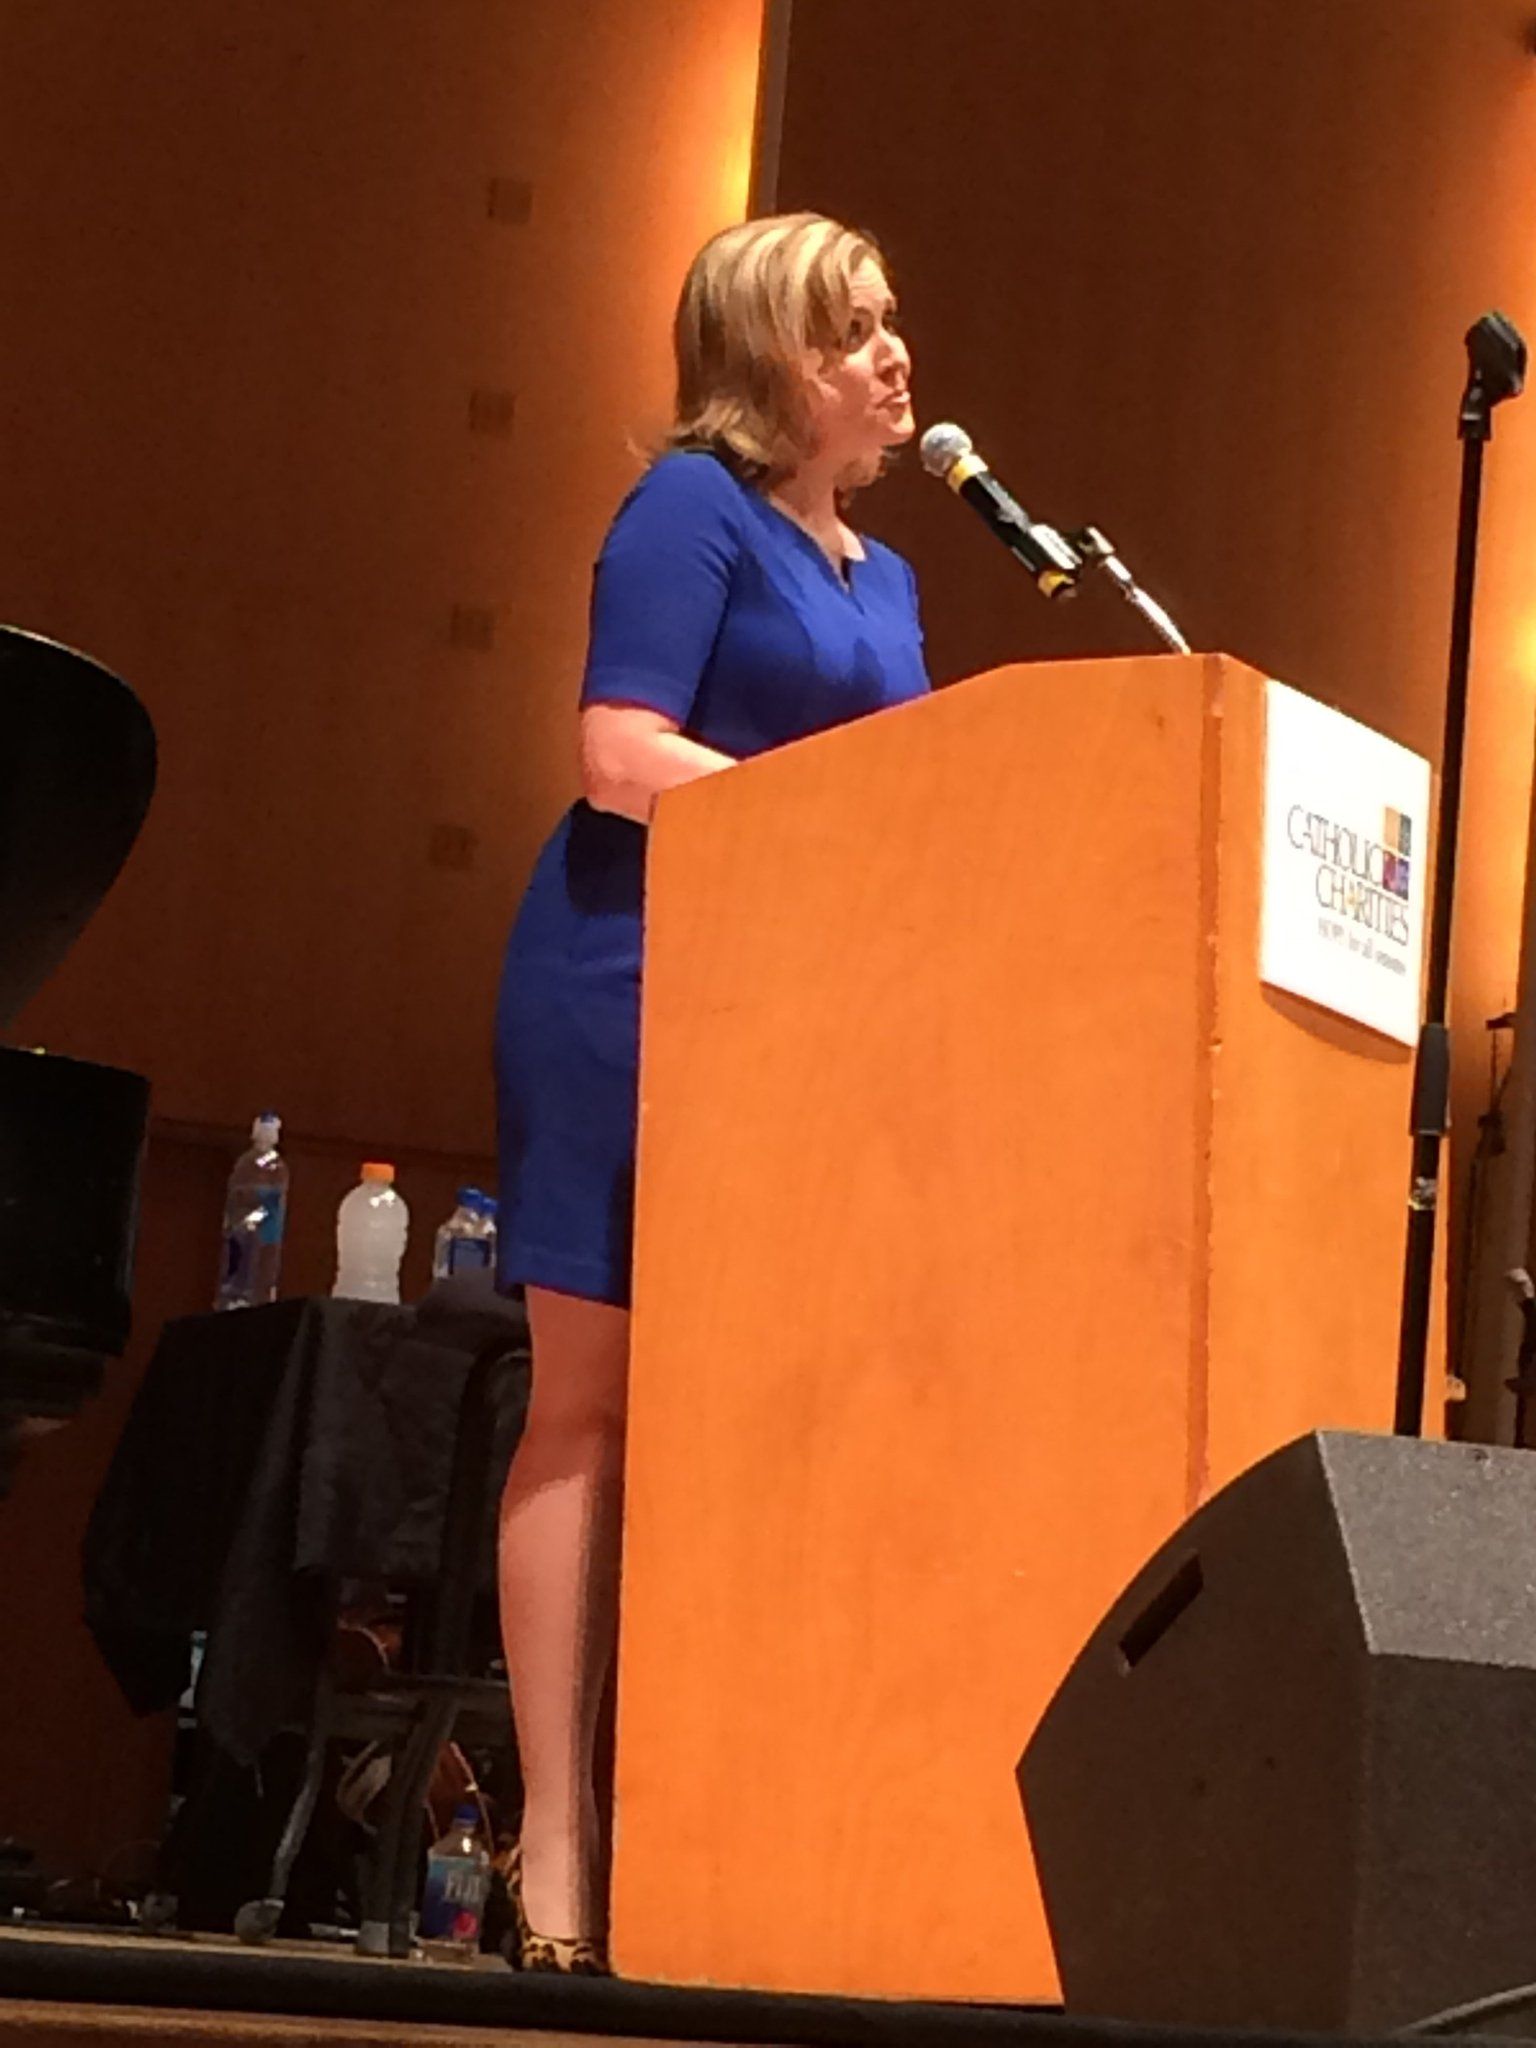 maryalice demler on twitter   u0026quot so honored to mc  ccbuffalo appeal unveiling  u0026 benefit concert